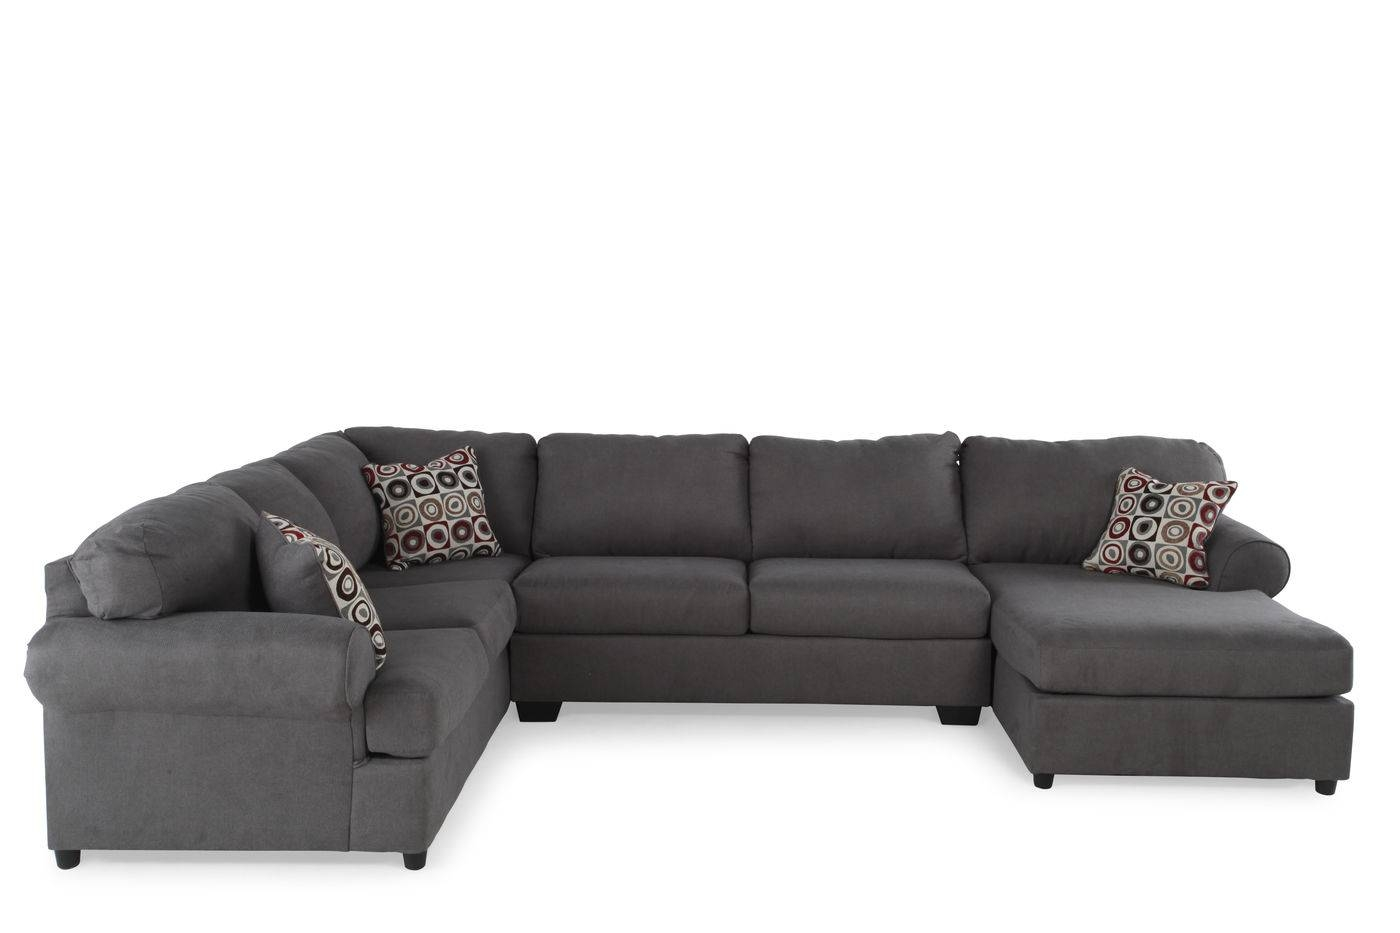 Eco Friendly Sectional Sofa - Leather Sectional Sofa regarding Eco Friendly Sectional Sofa (Image 16 of 30)